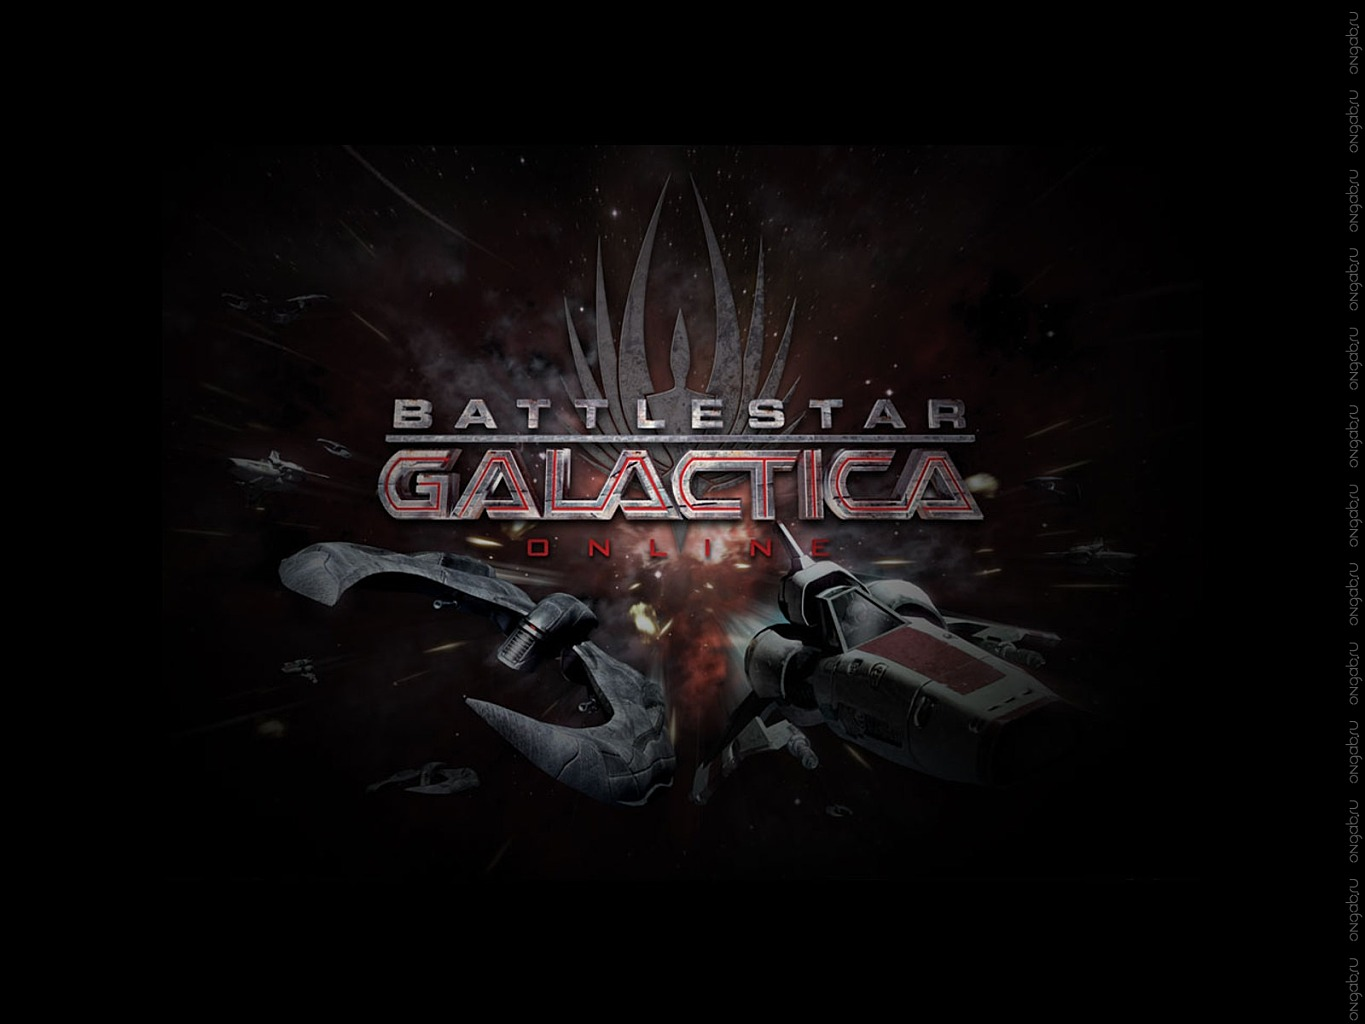 Скриншот Обои Battlestar Galactica, wallpaper #266585